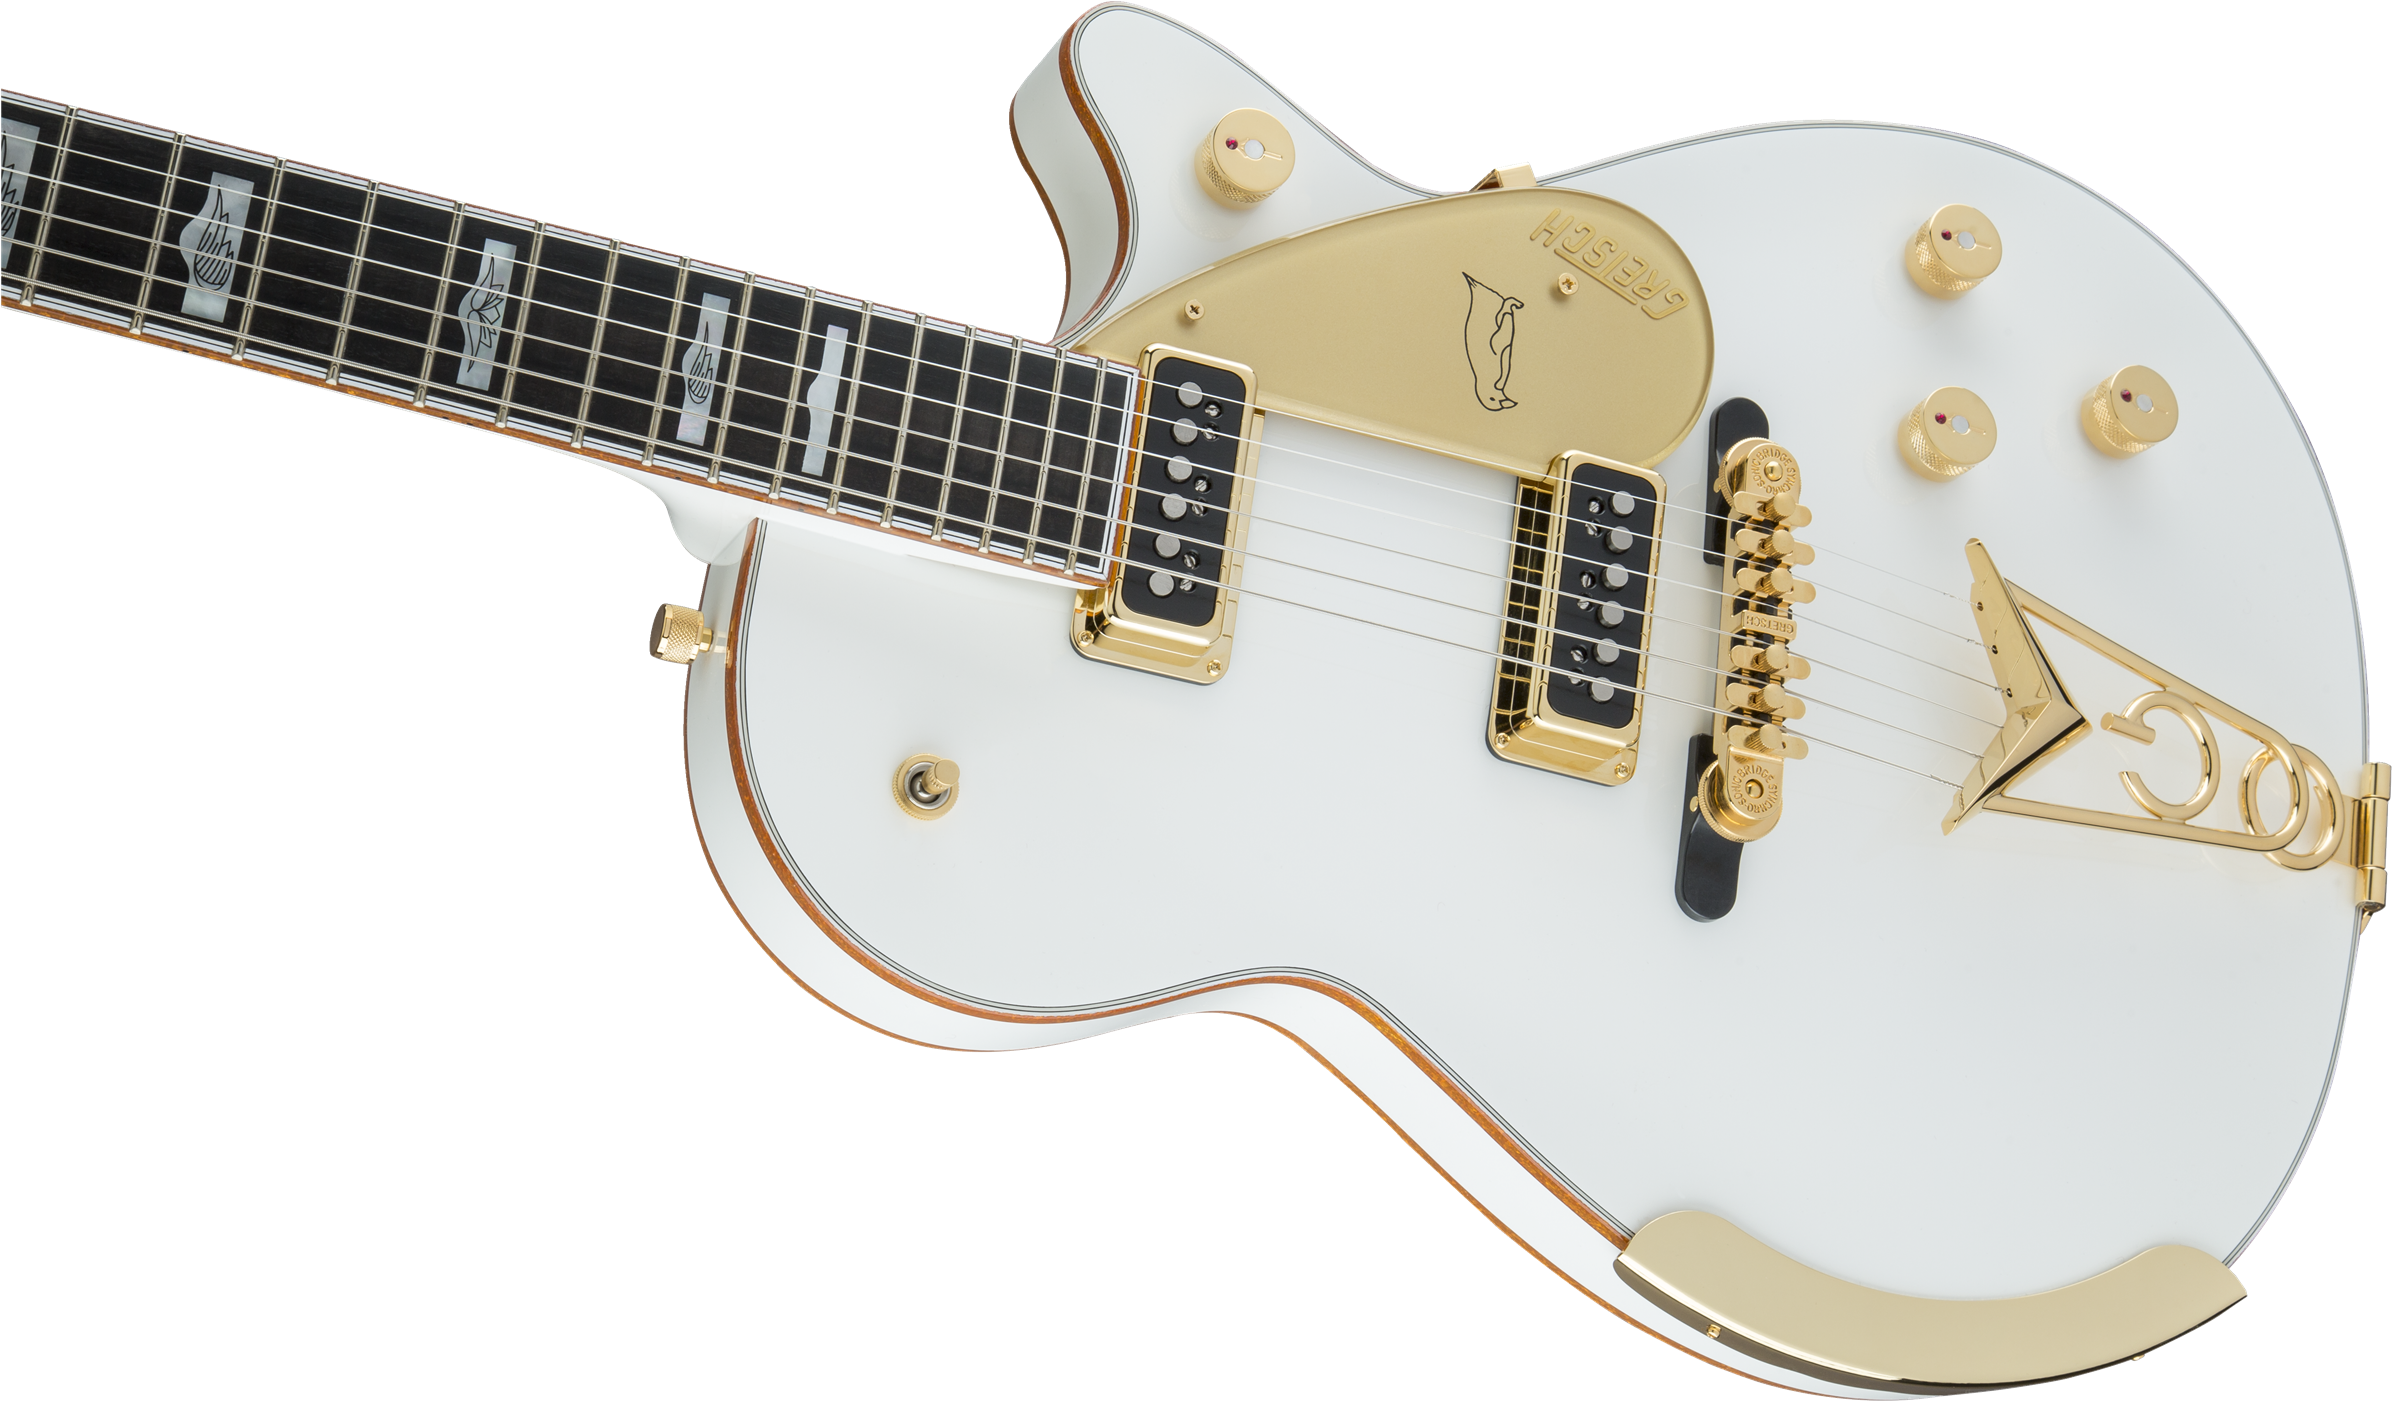 Clipart guitar winged. Solid body g white